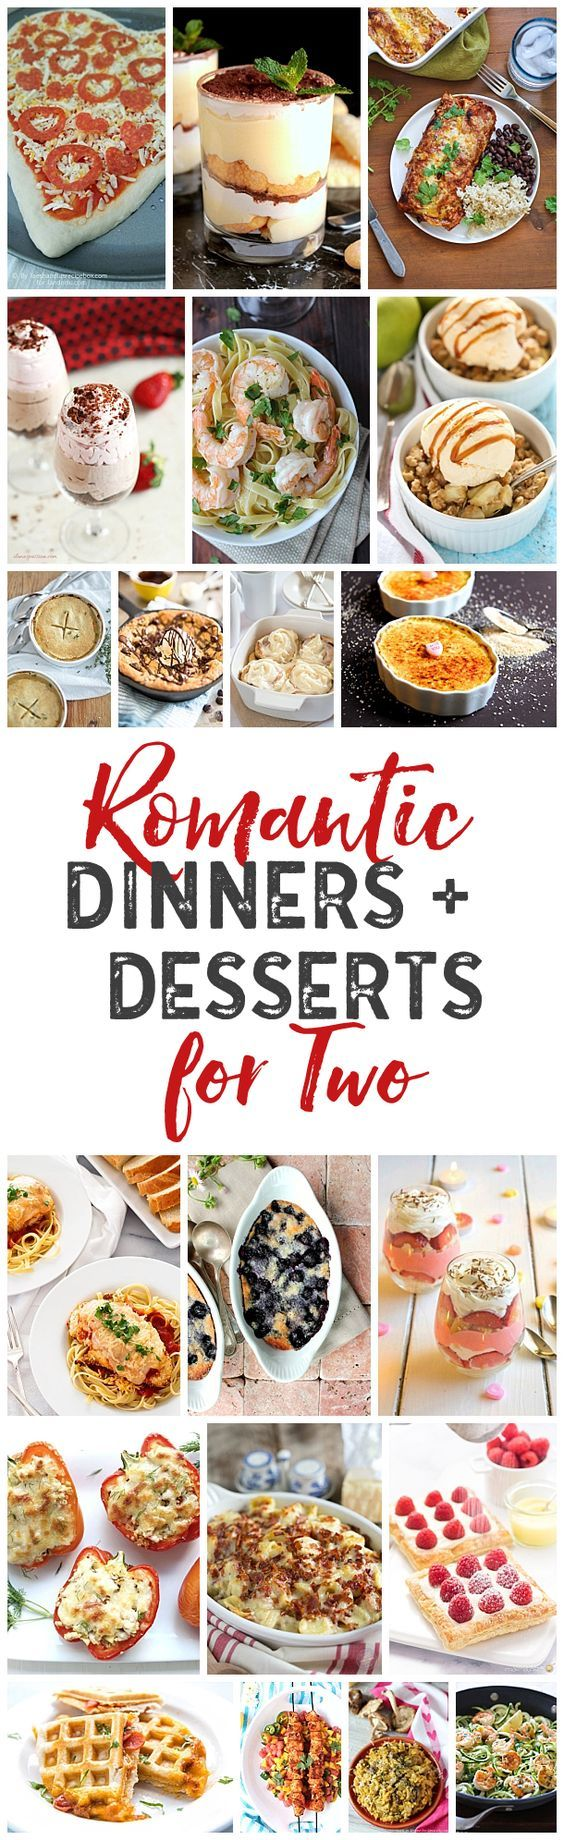 Perfect Dinner And Dessert Ideas For Romantic Nights Dinner For Two For Valentine S Day